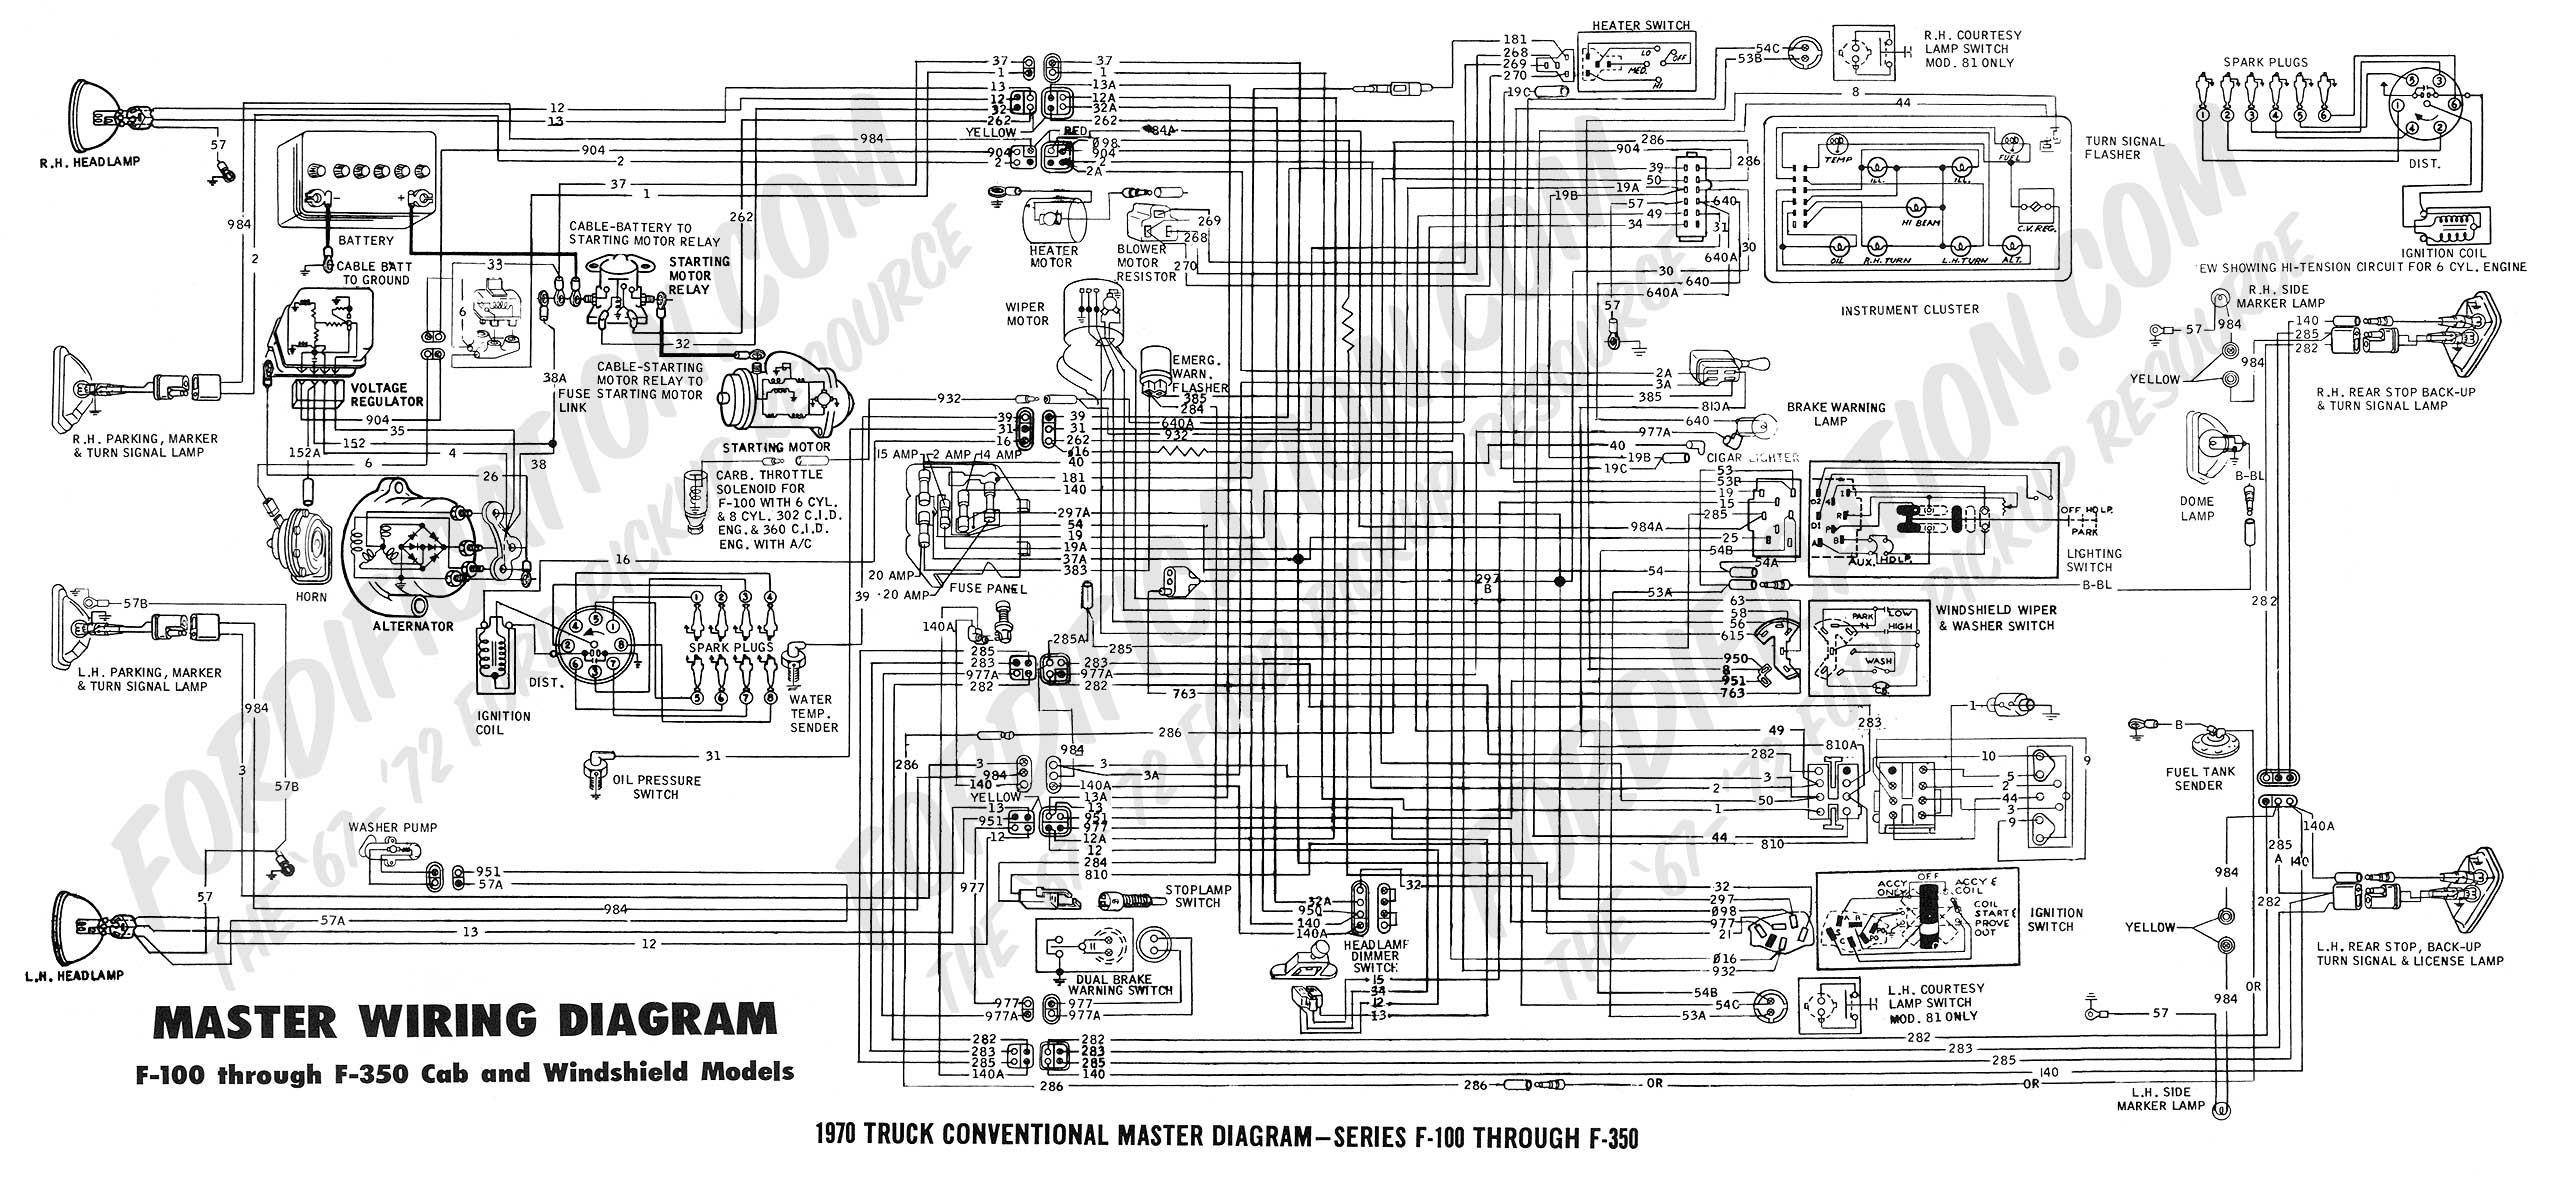 2000 Ford F 150 Starter Wiring Diagram